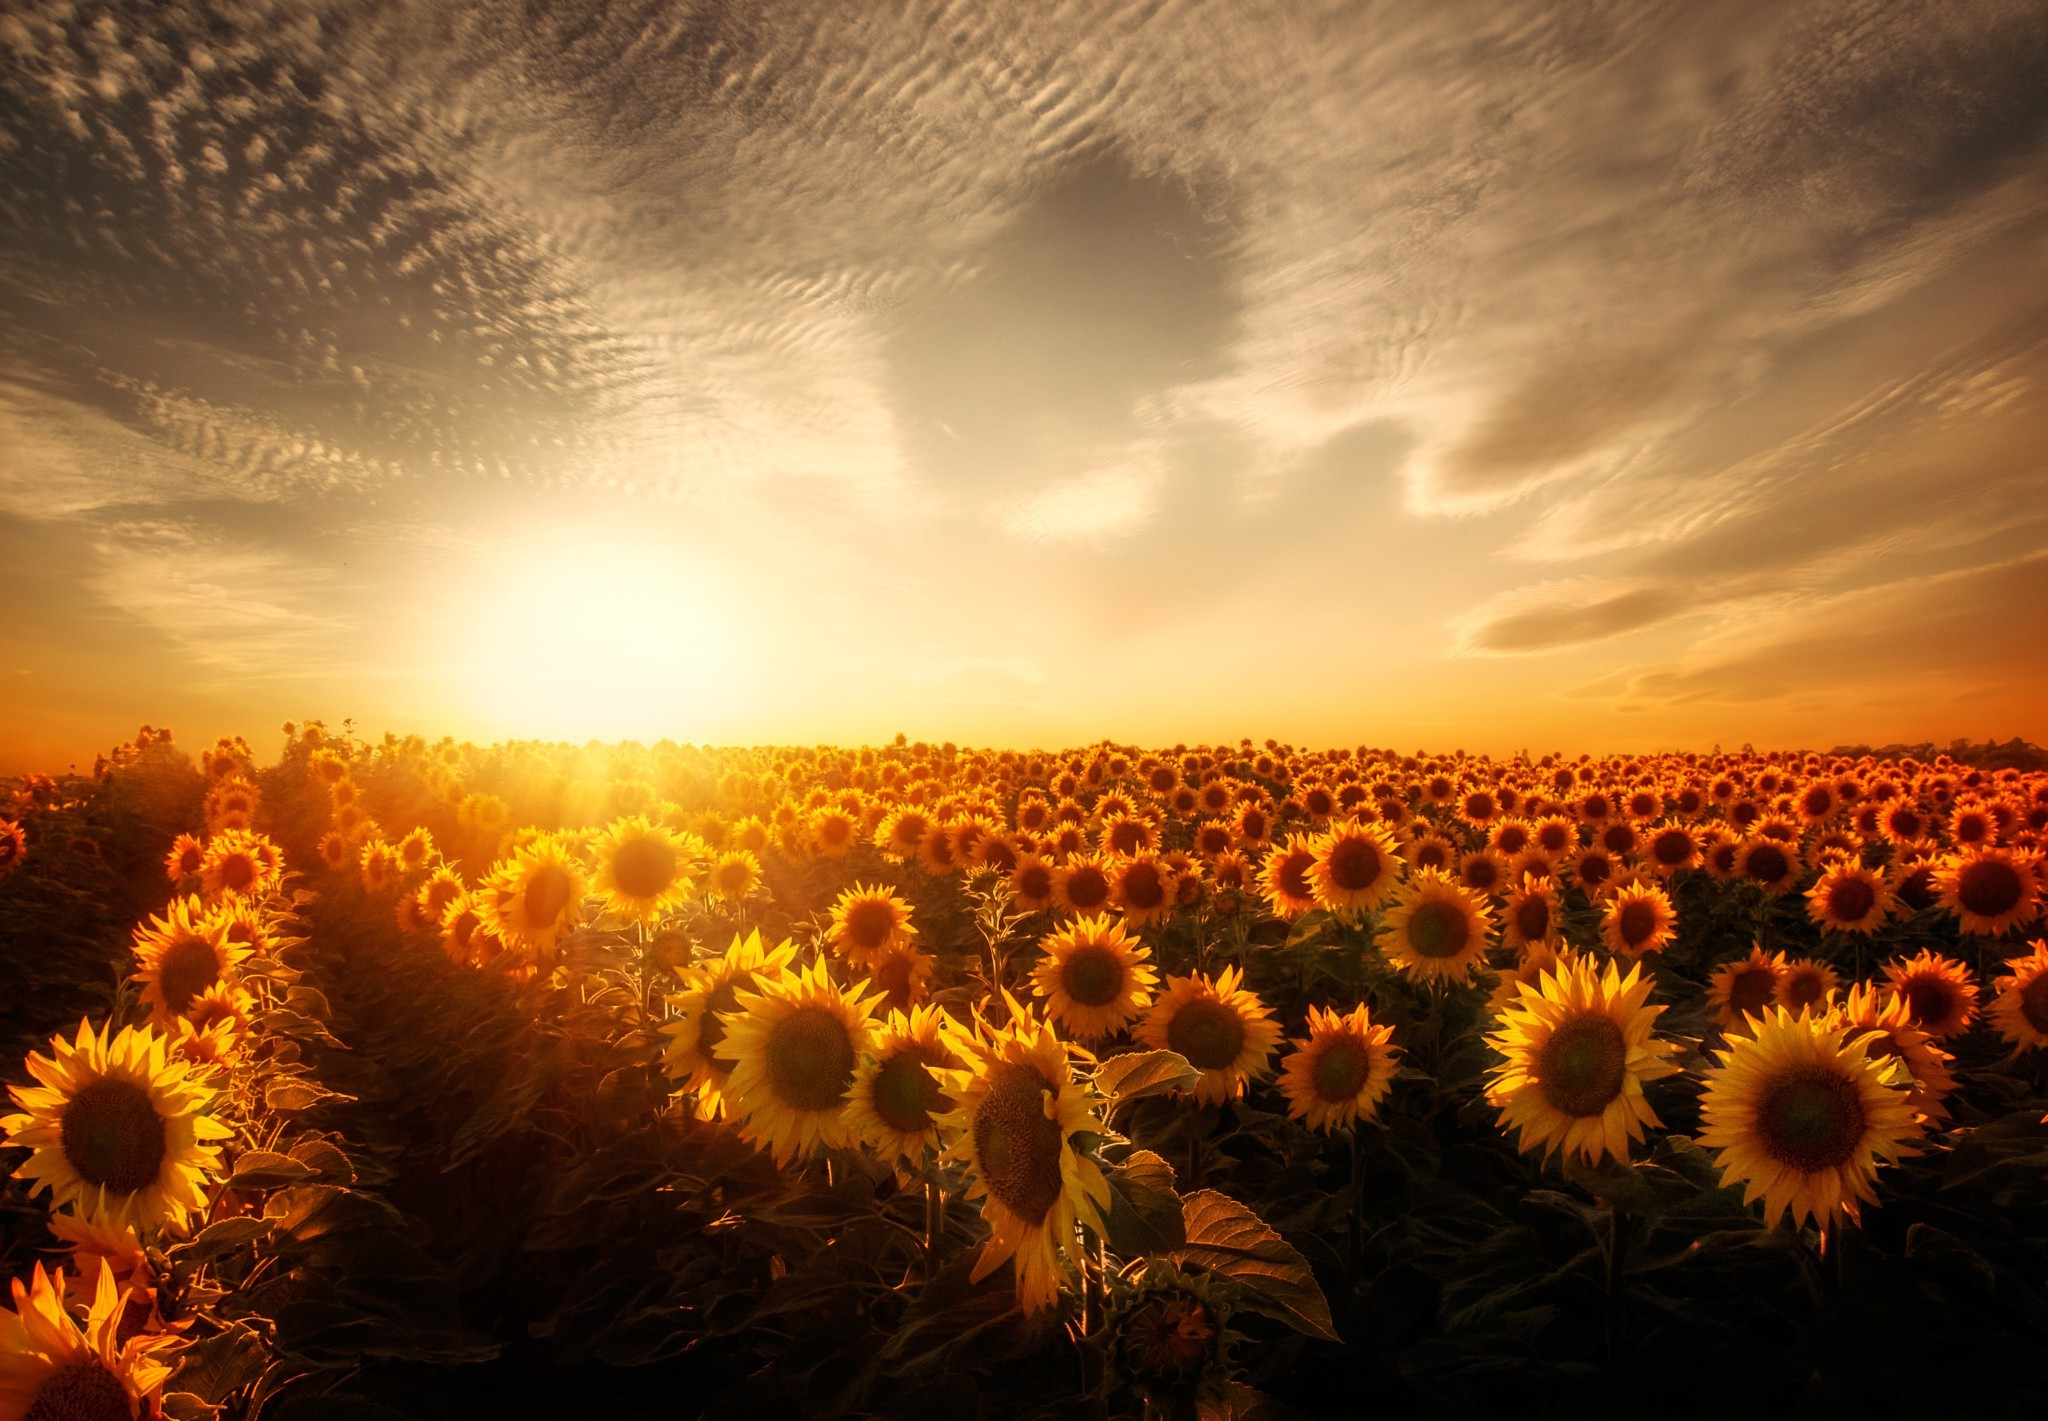 Sunflowers Sunset HD Nature 4k Wallpapers Images Backgrounds